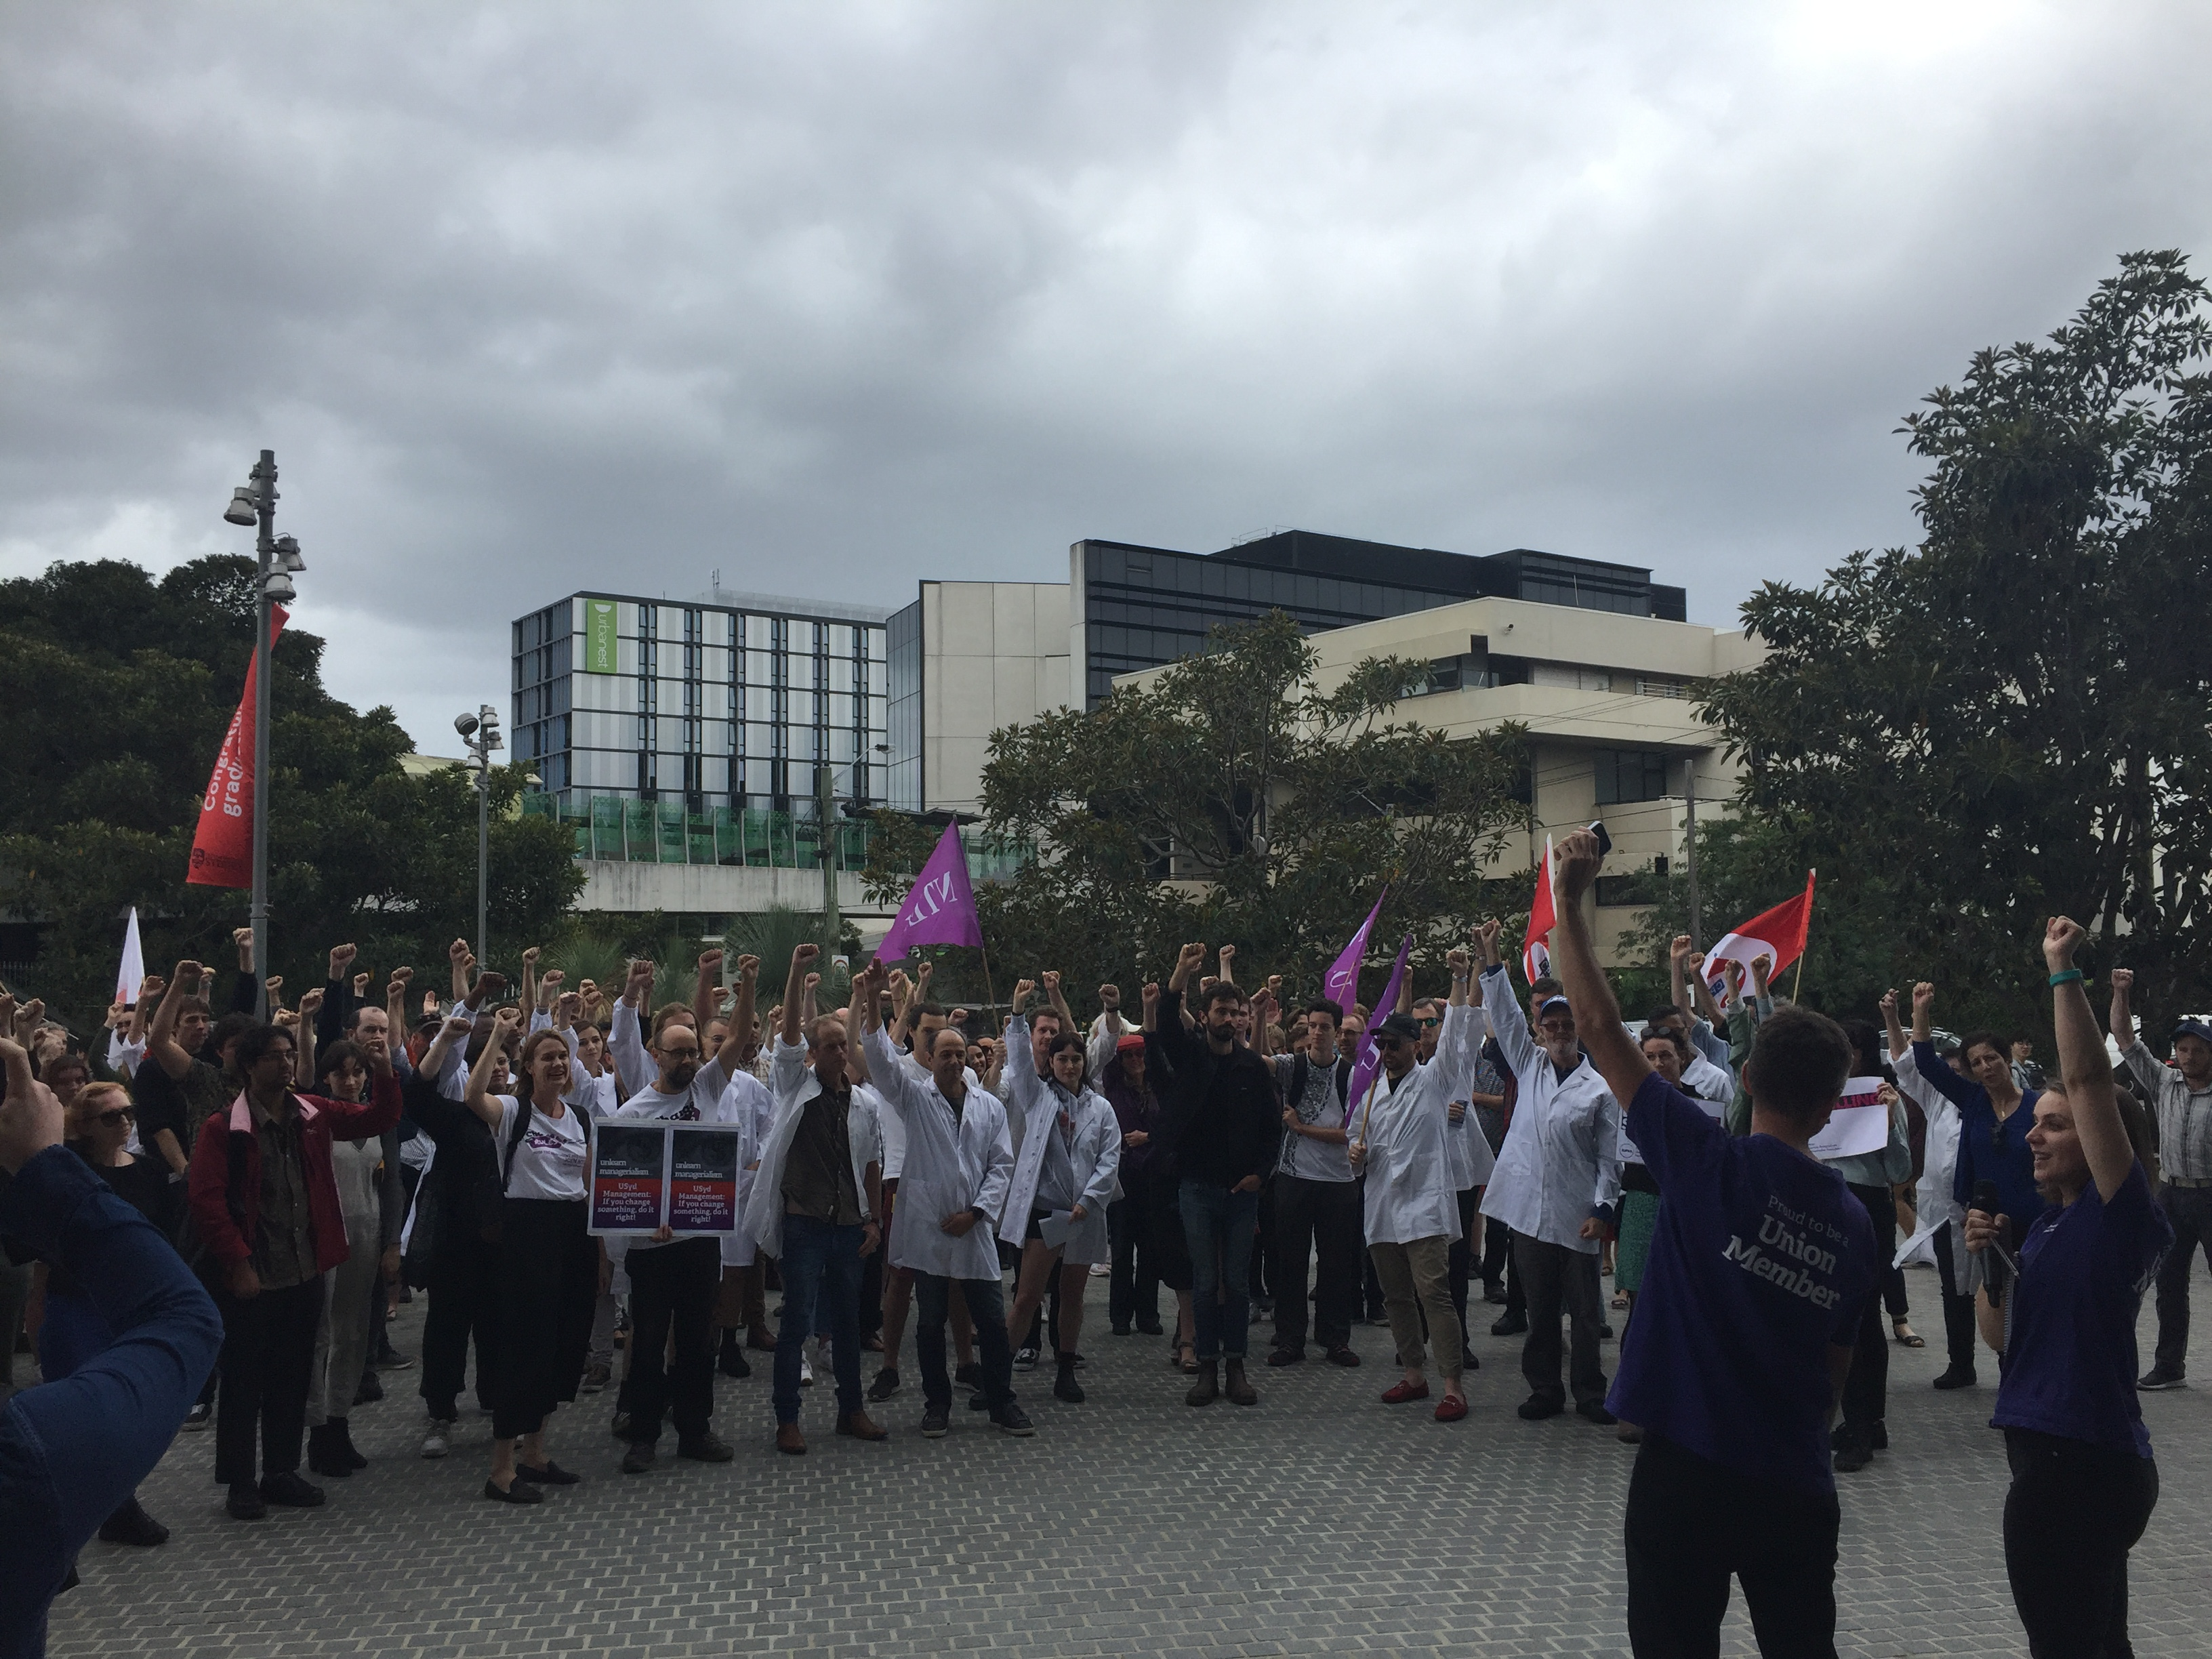 An NTEU motion of no confidence against Michael Spence and senior management passed unanimously. Staff and students pictured with fists raised.